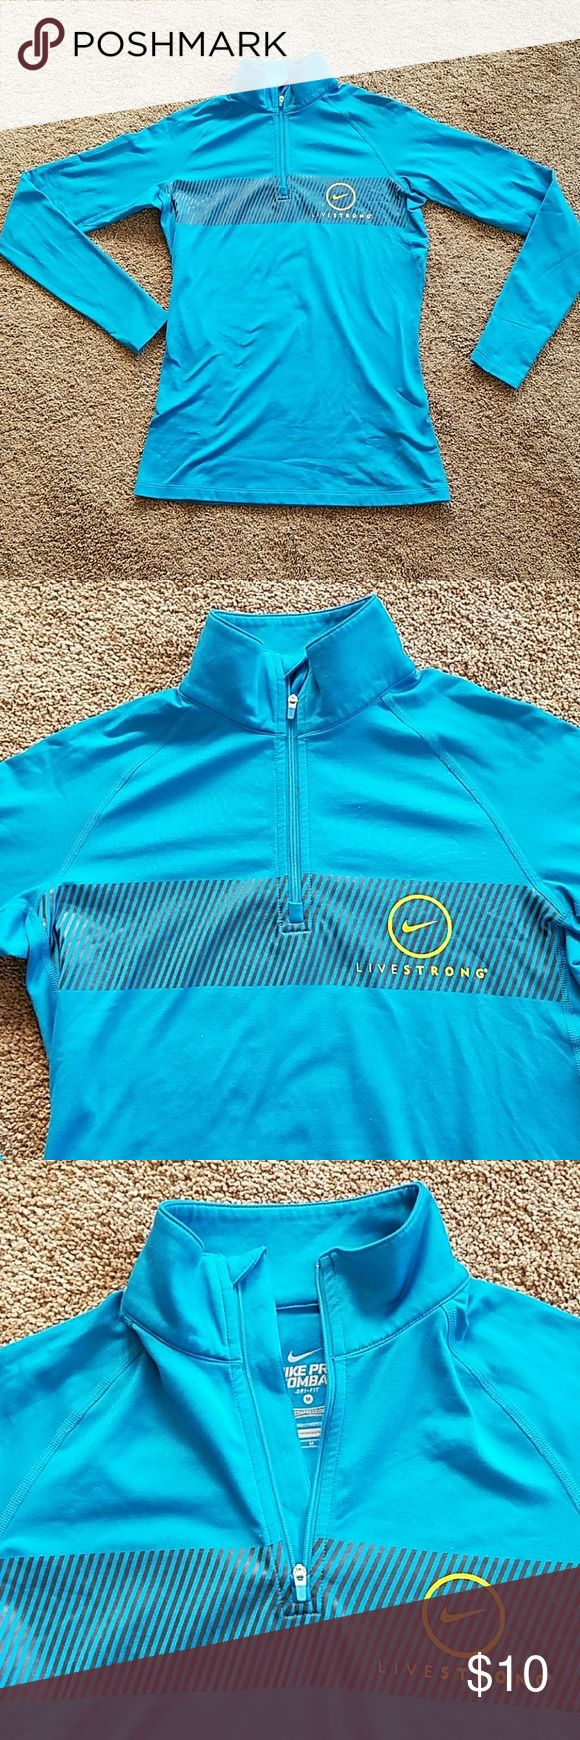 Nike livestrong pro combat 1/4 zip long sleeve Fantastic condition! Nike livestrong pro combat1/4 zip long sleeve. It does have the thumb holes, great for working out in! Nike Tops Sweatshirts & Hoodies